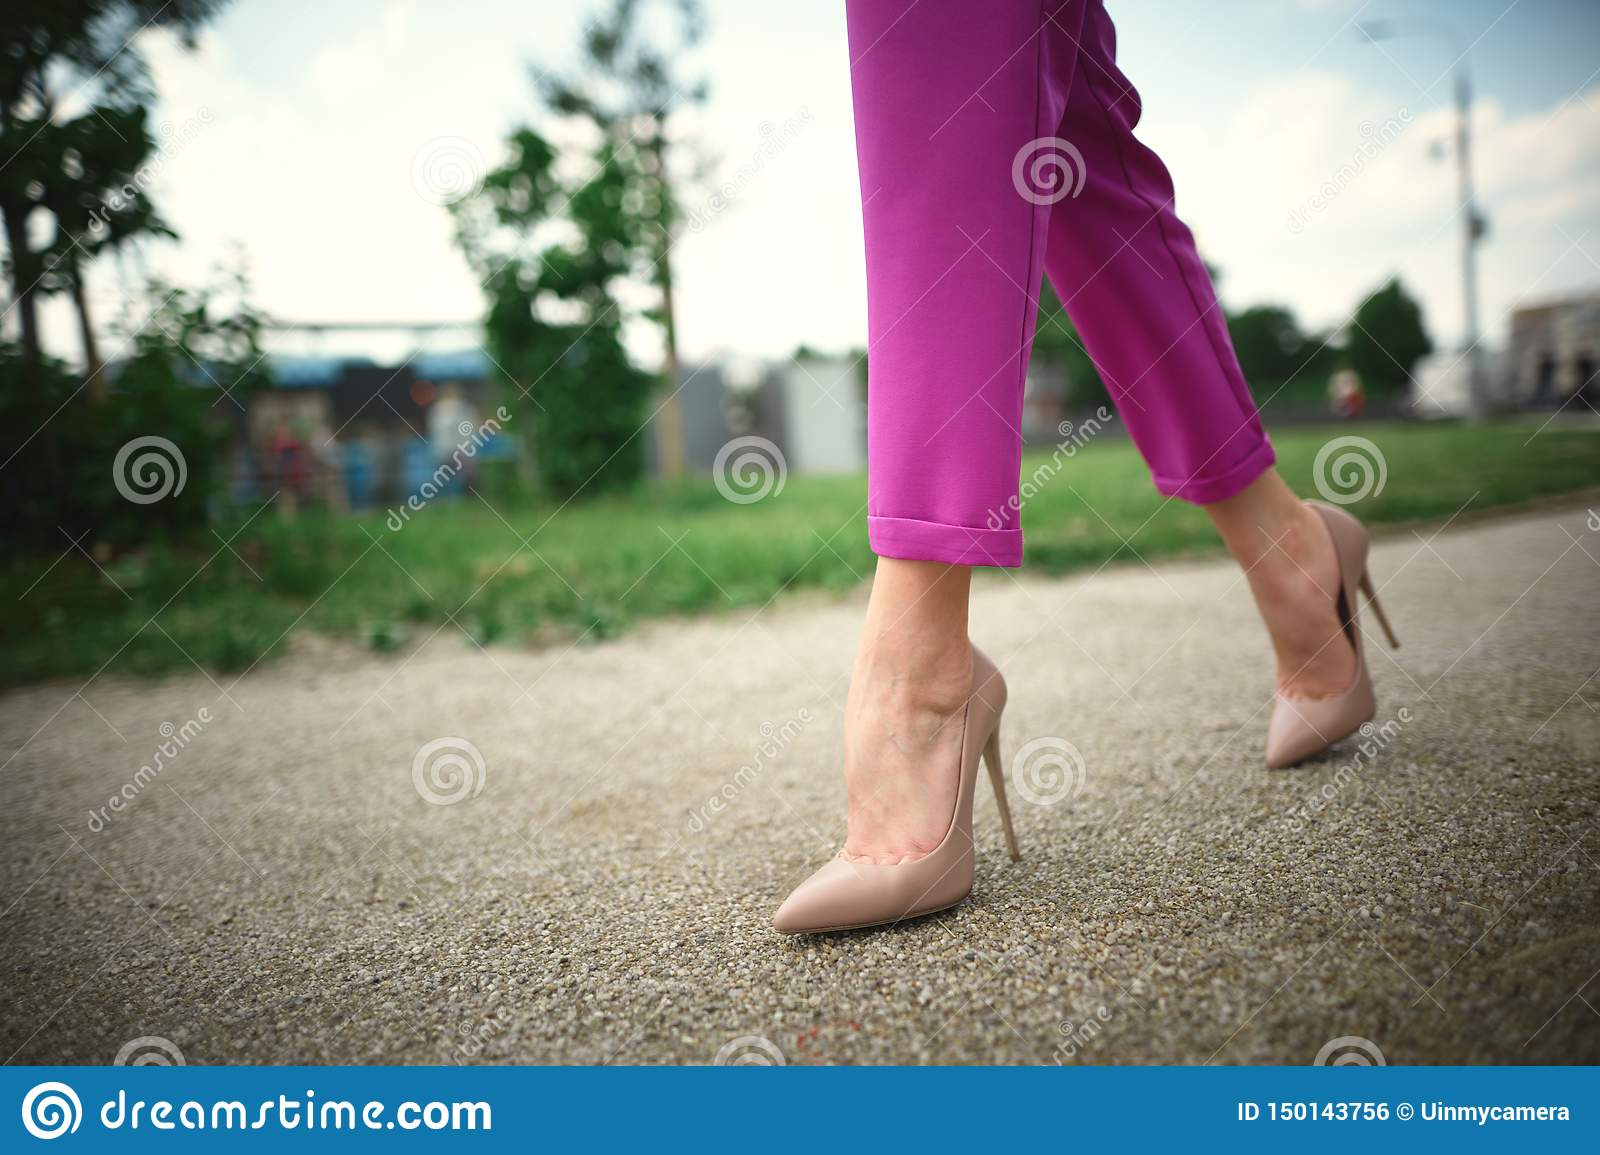 legs of a young girl in heels in step on grass background